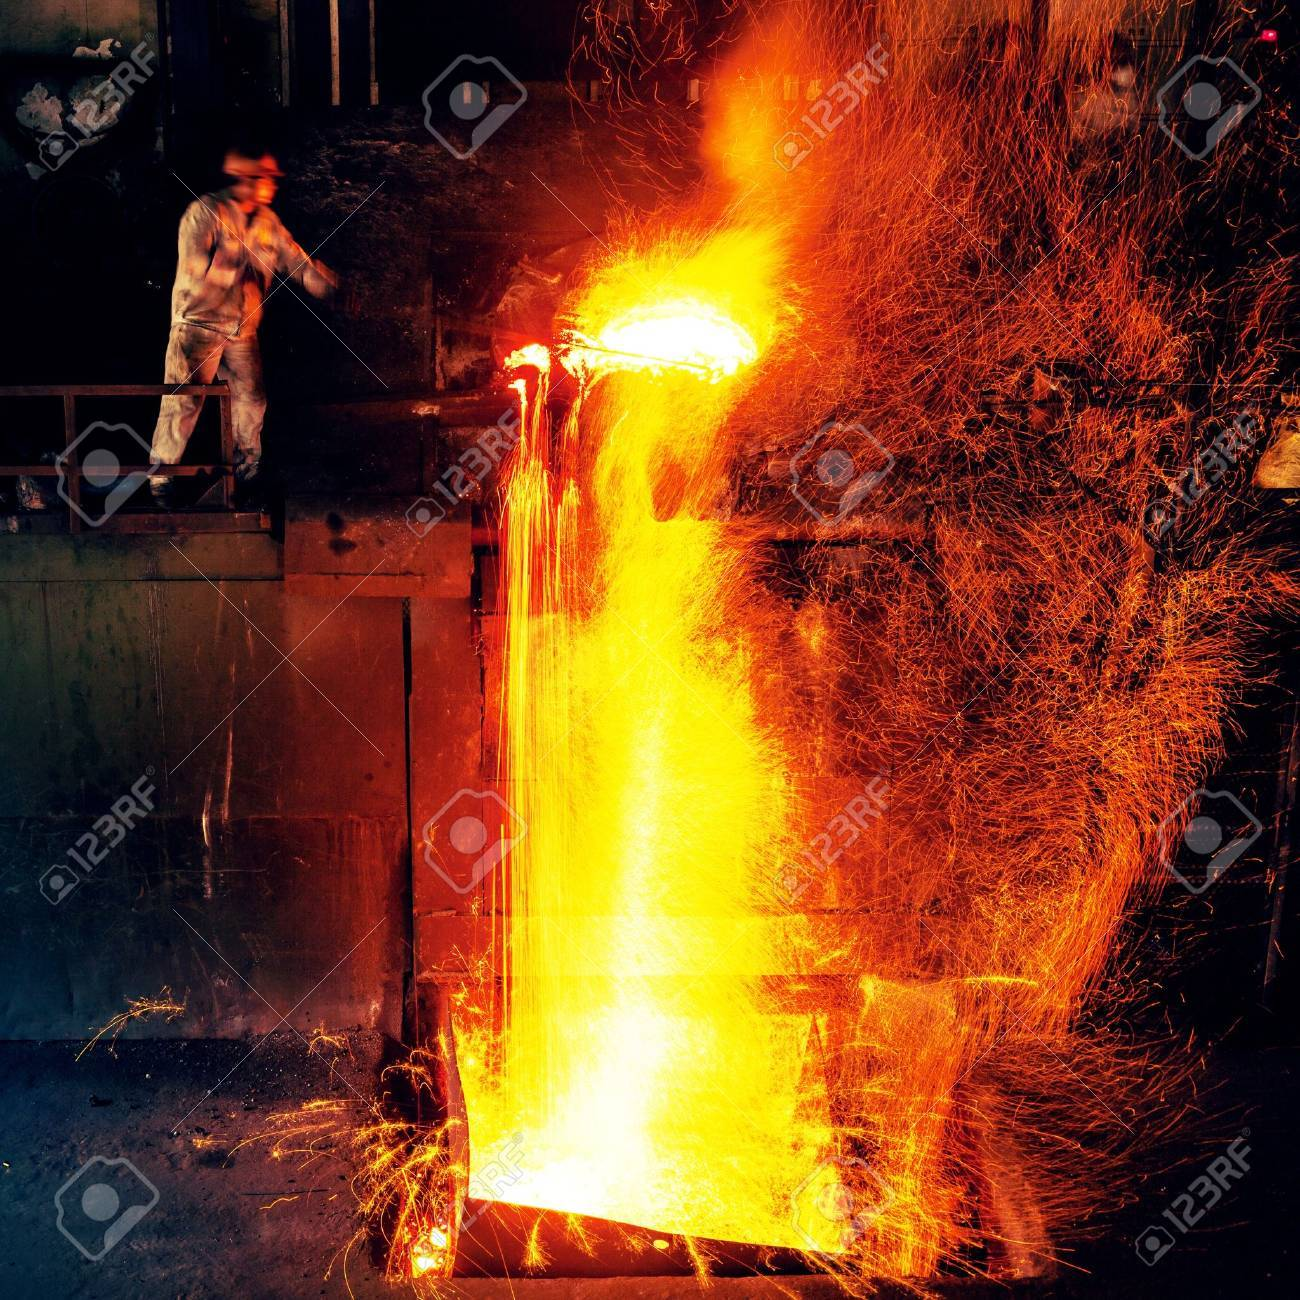 Pouring of liquid metal in open hearth workshop Stock Photo - 15142136